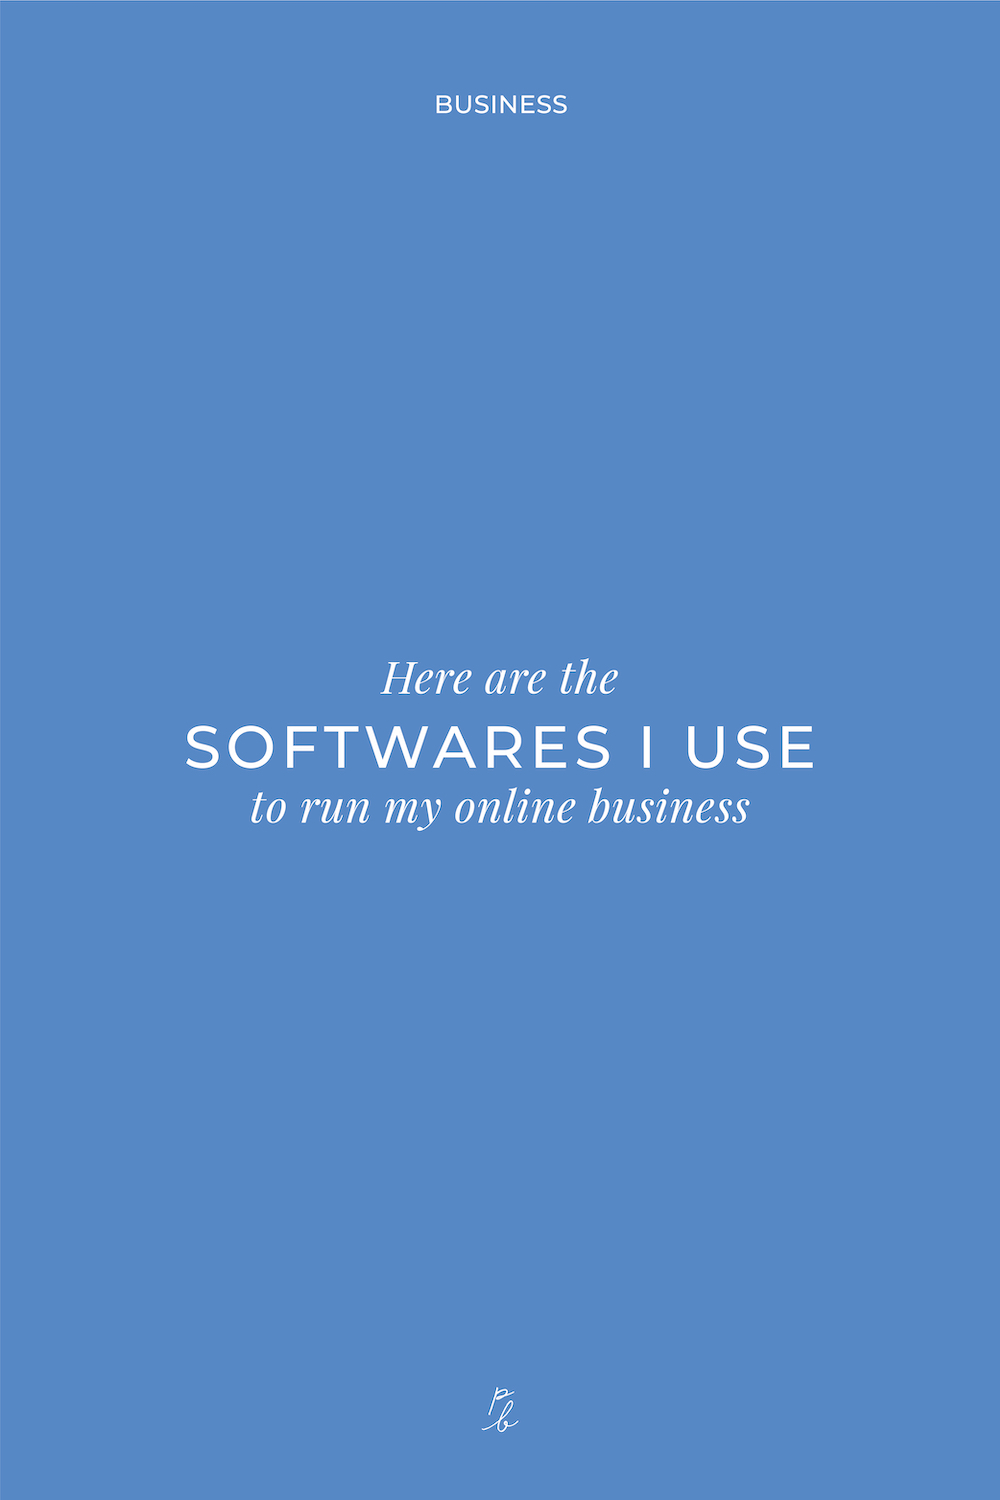 3-Here are the softwares I use to run my online business.jpg